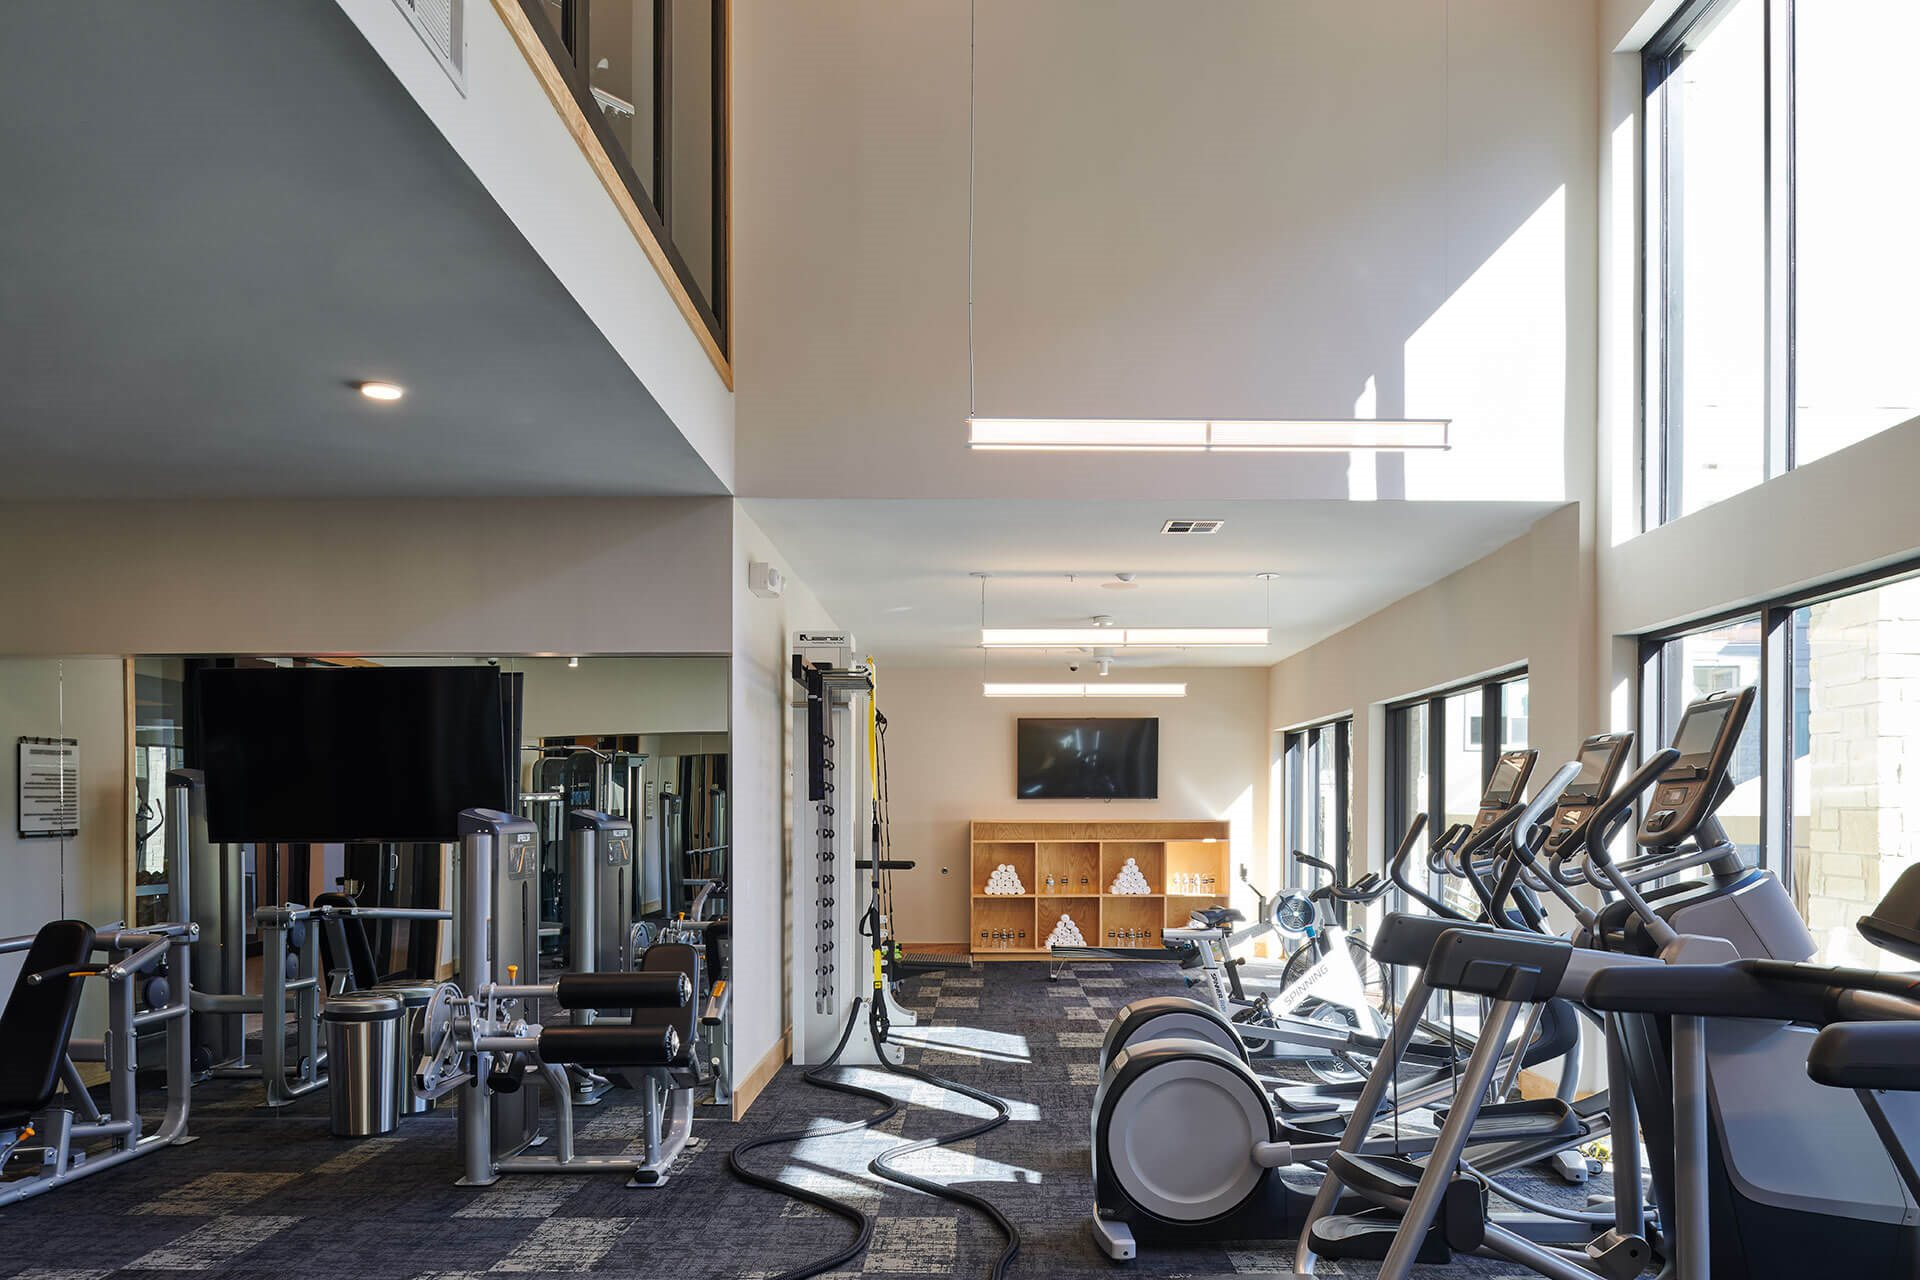 The Athletic Center with Cardio Theater, Free Weights, and More at Windsor Burnet, Austin, TX